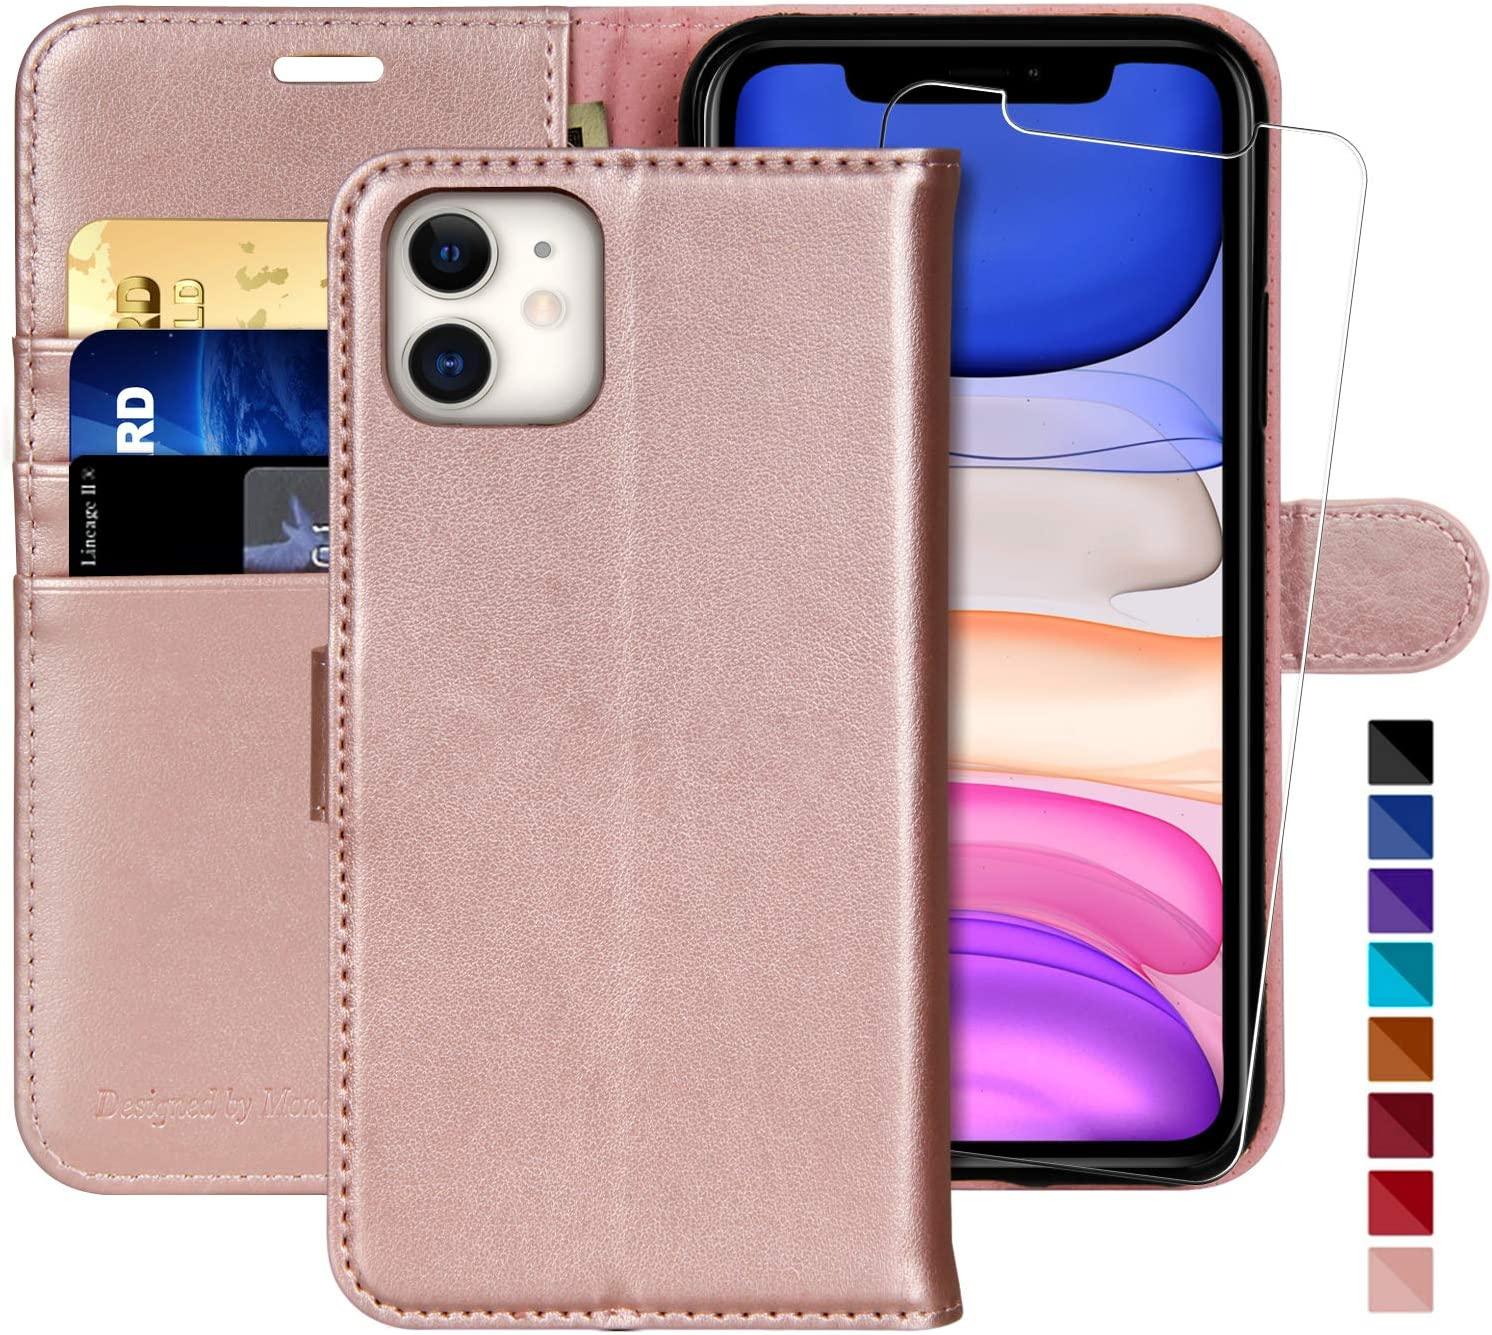 MONASAY iPhone 11 Wallet Case,6.1-inch Glass Screen Protector Included Flip Folio Leather Cell Phone Cover with Credit Card Holder for iPhone 11 RFID Blocking